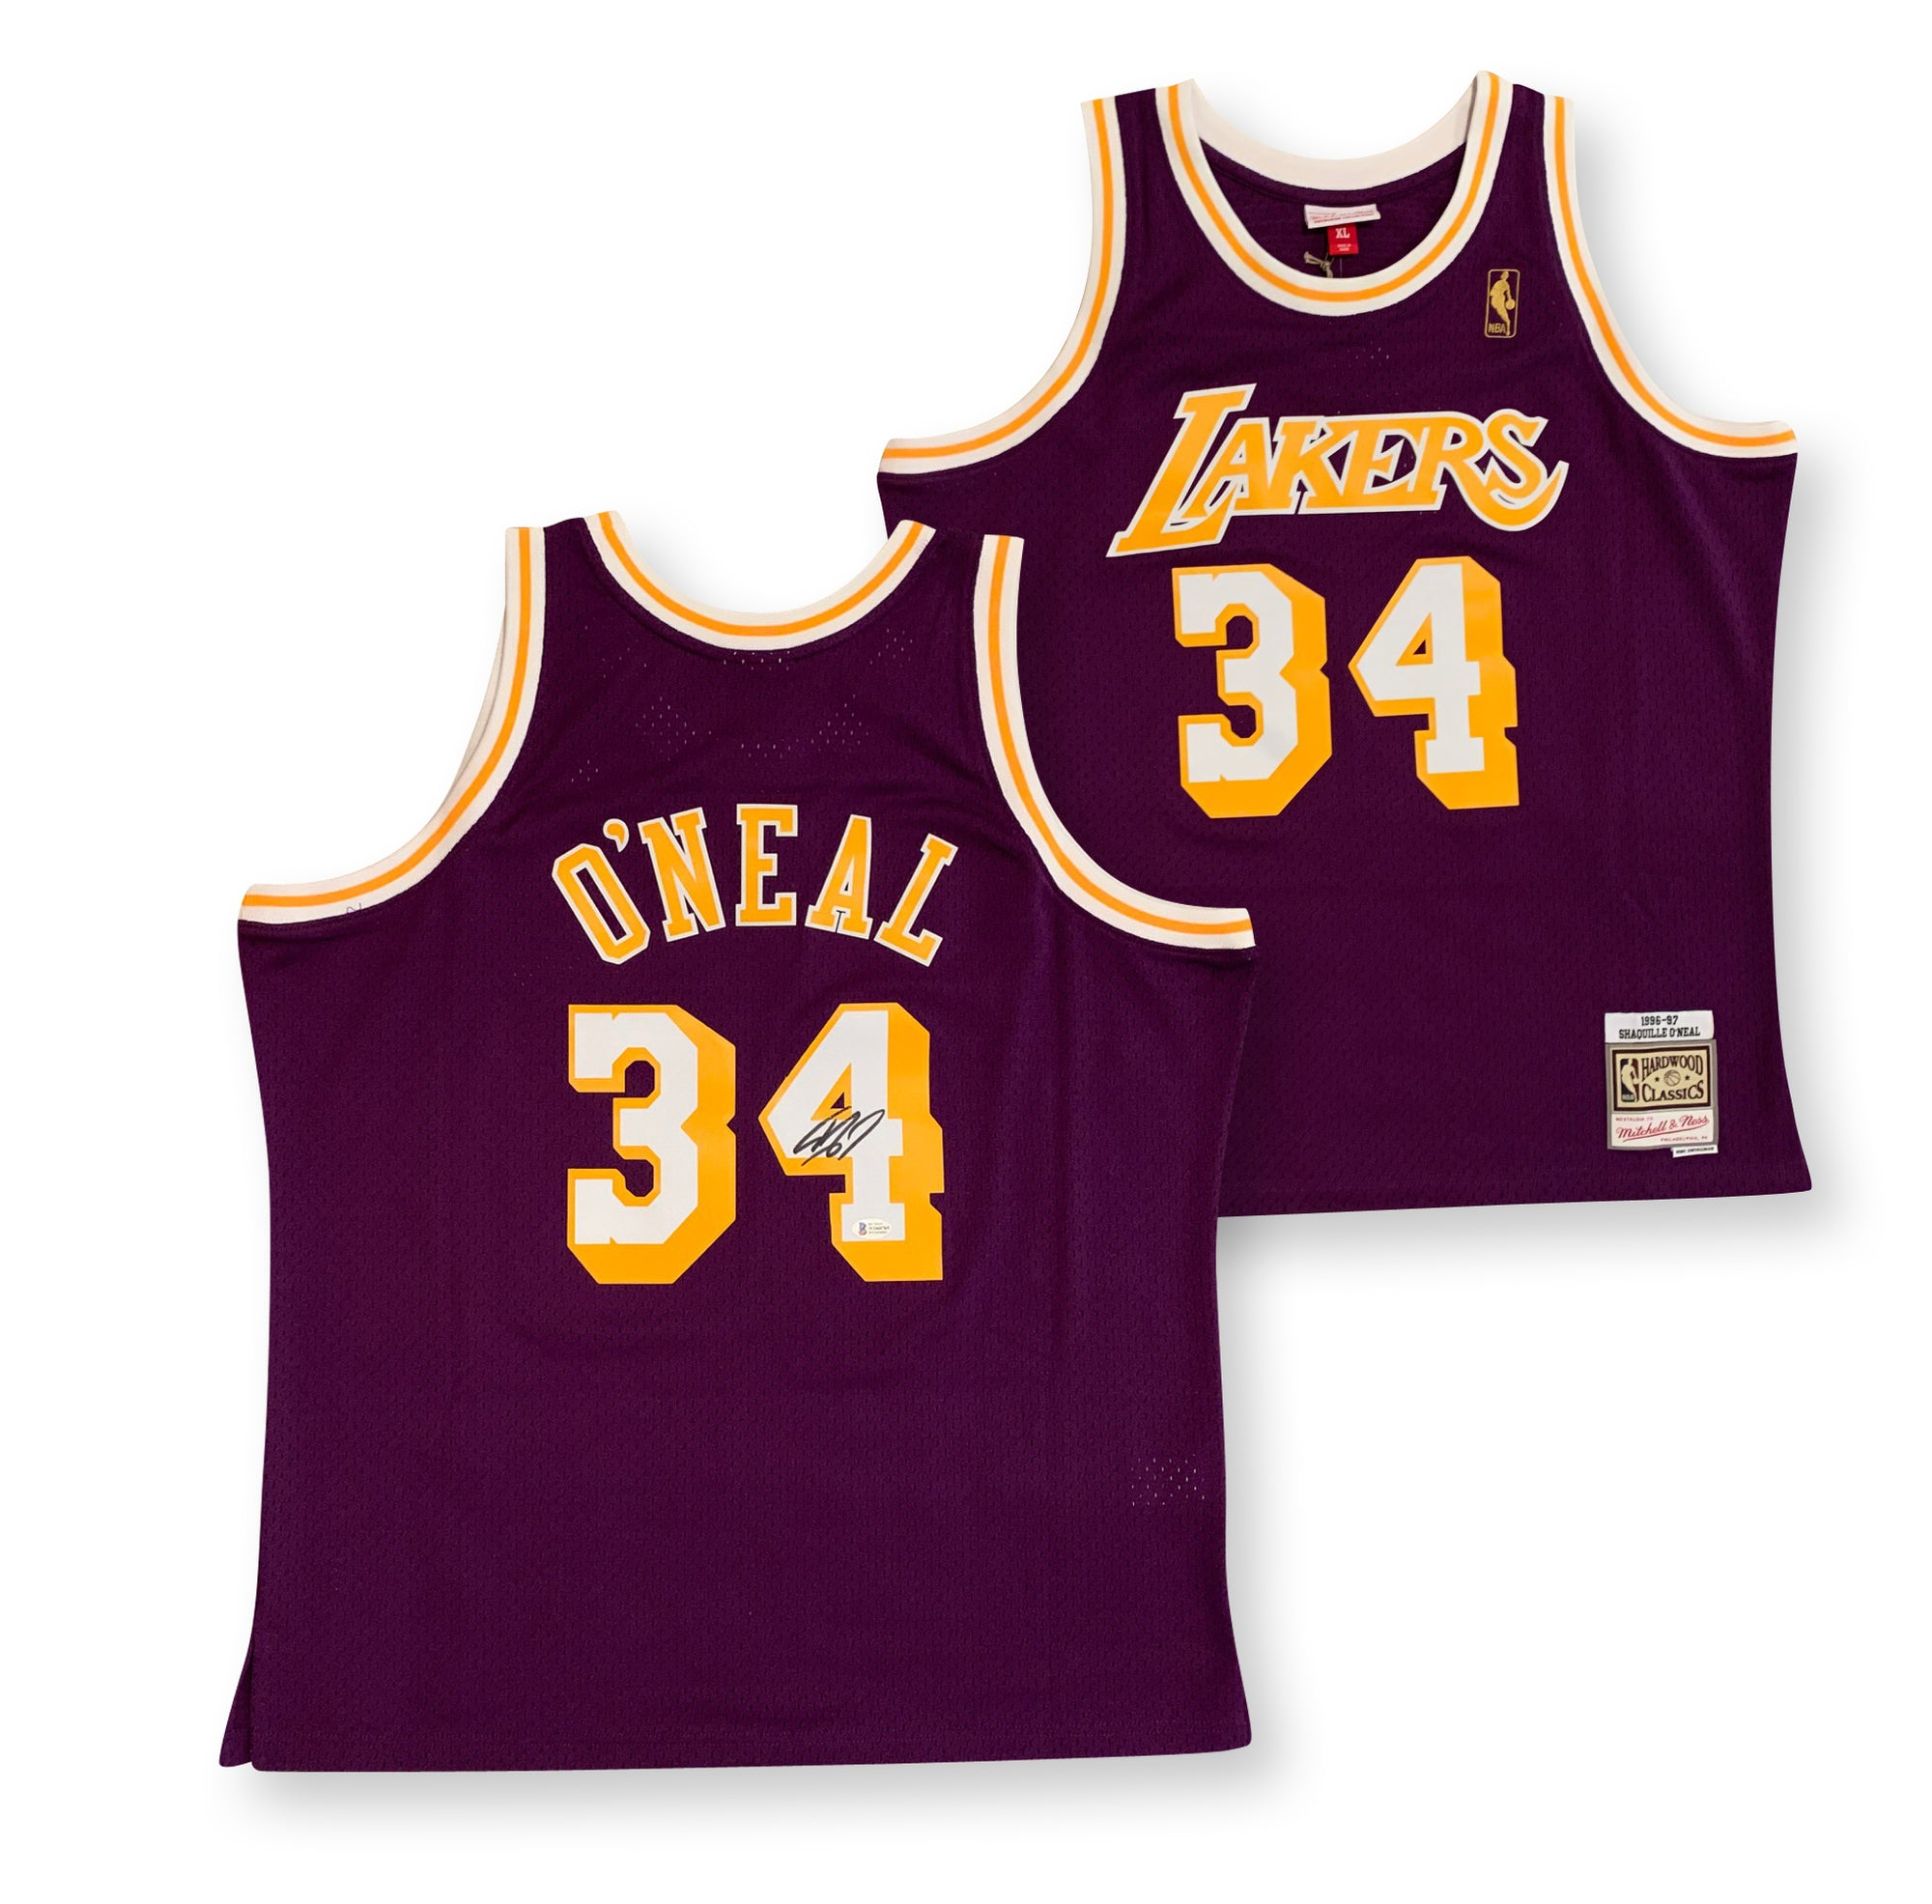 Shaquille O'Neal Autographed Los Angeles Lakers Officially Licensed Mitchell and Ness Swingman Signed 1996-1997 Basketball Purple Jersey Beckett BAS COA-Powers Sports Memorabilia